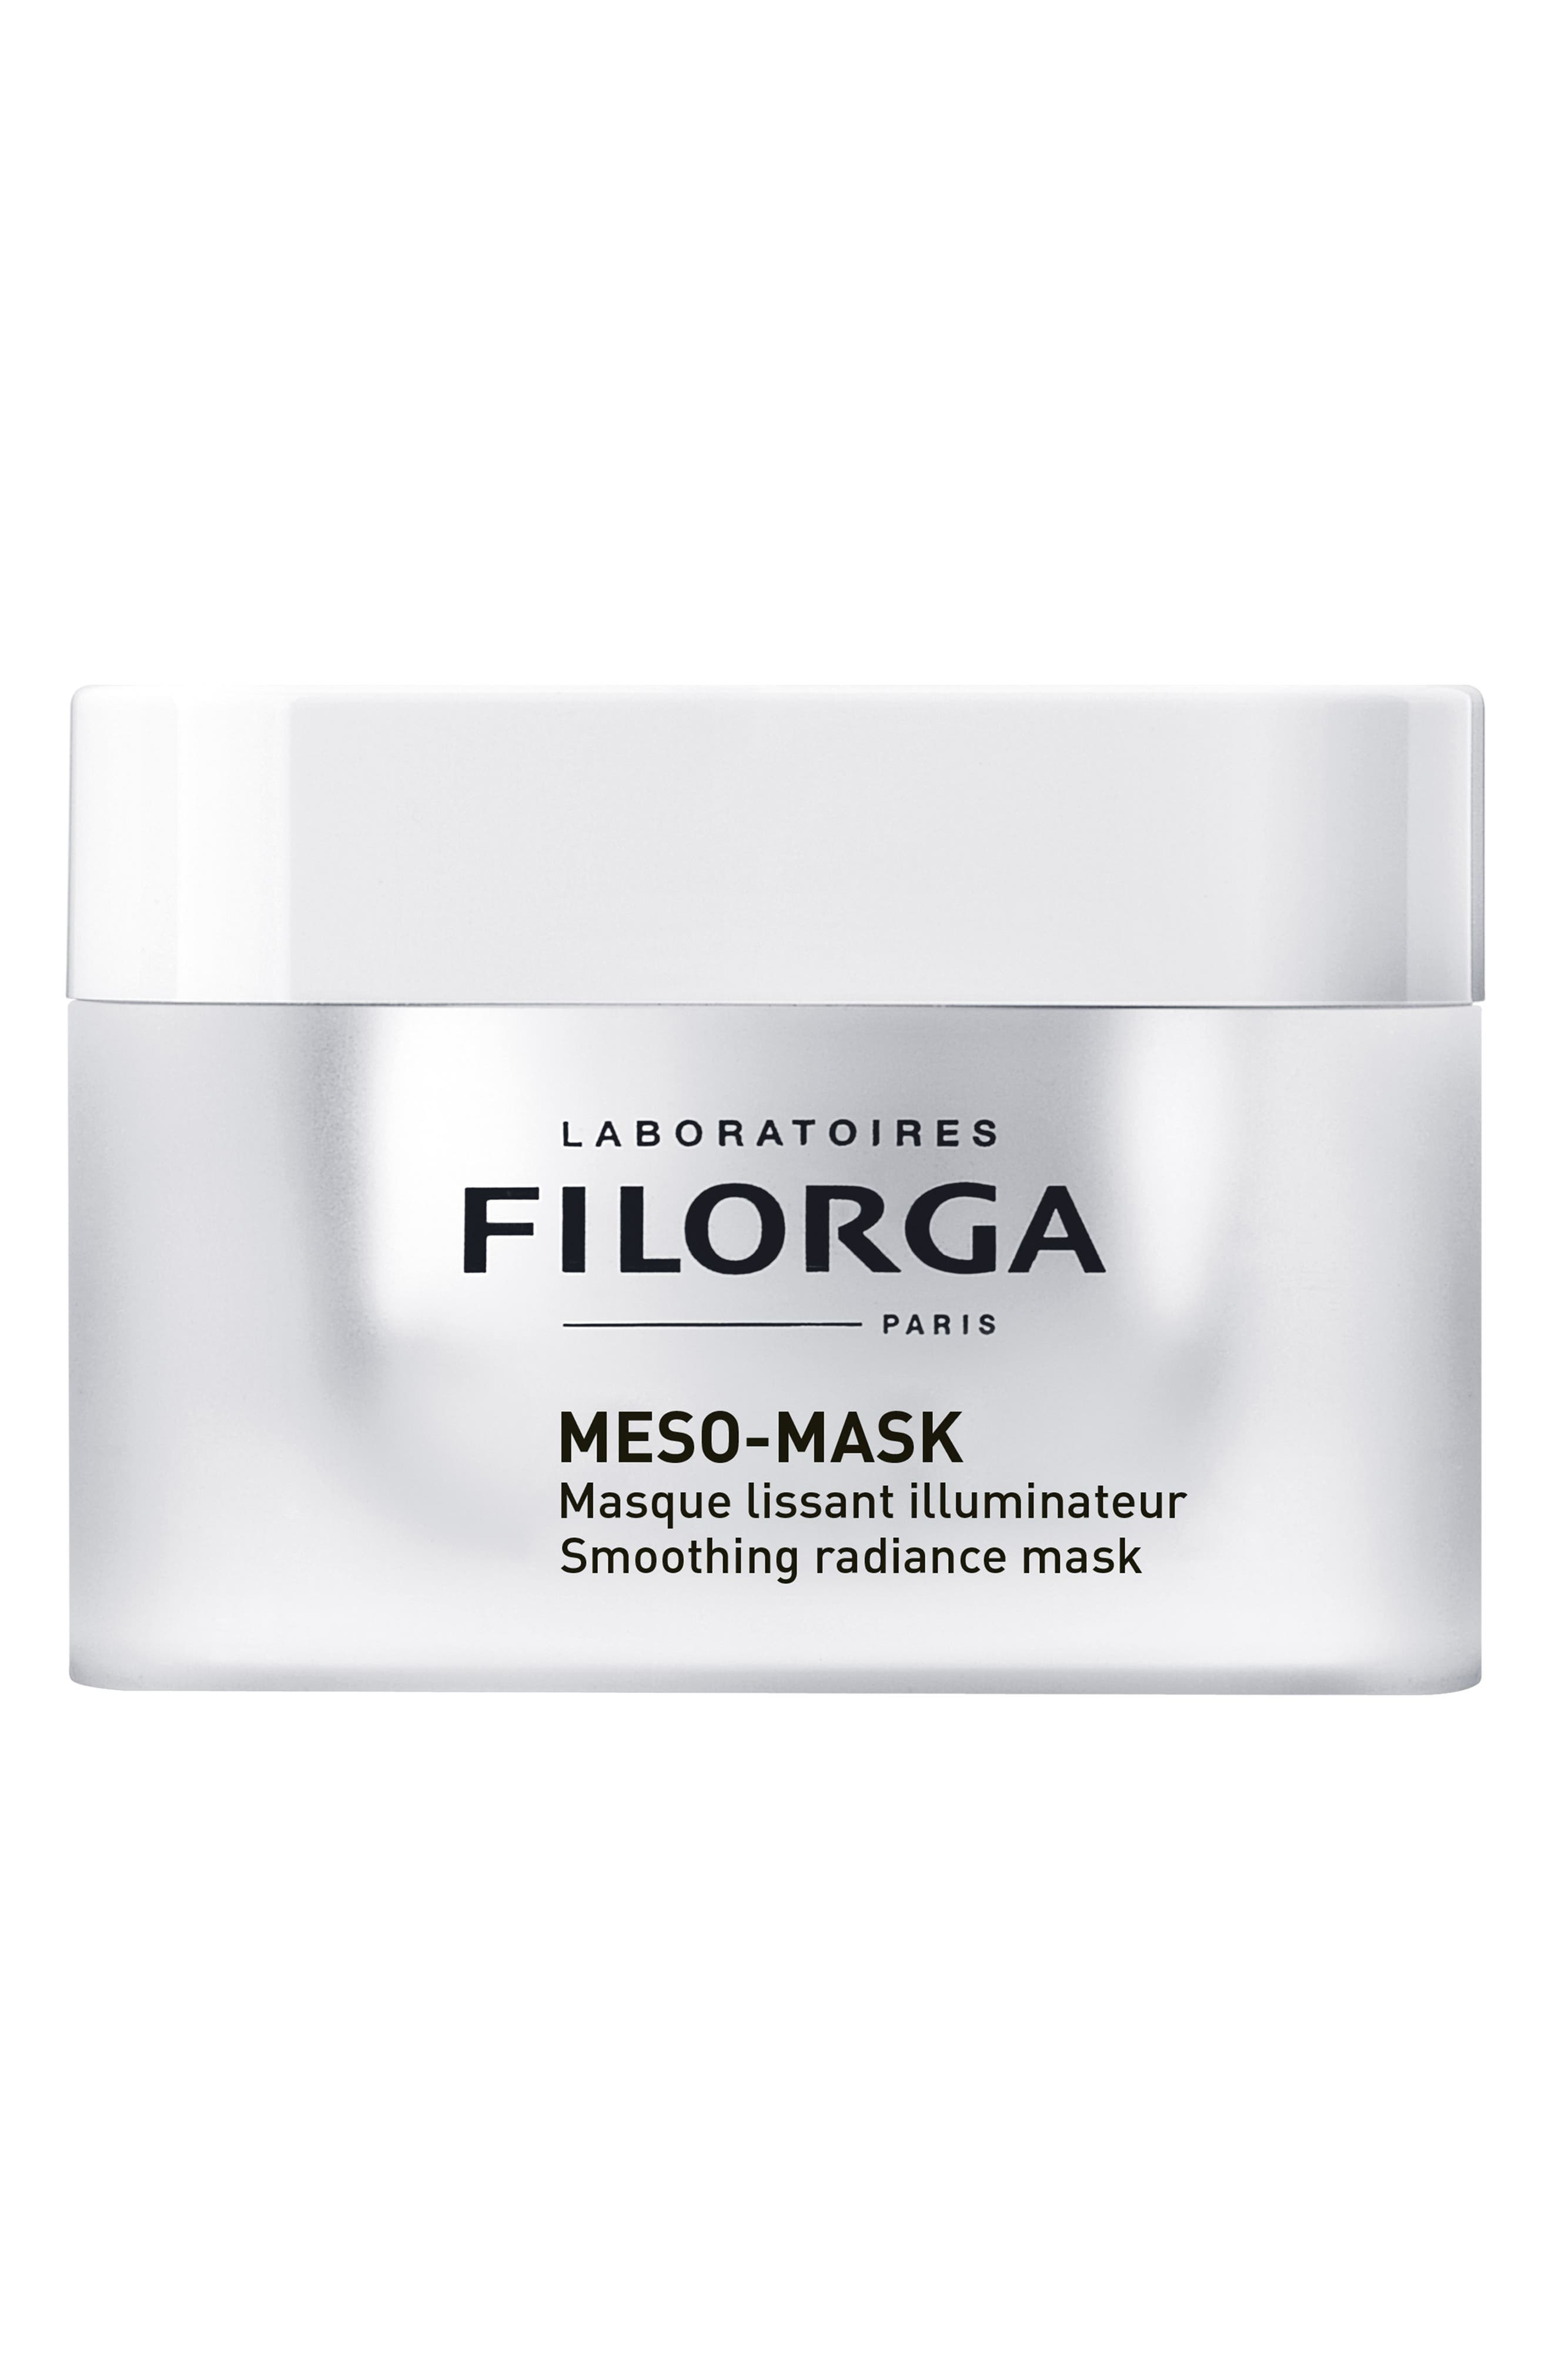 'Meso-Mask' Anti-Wrinkle Lightening Mask,                             Main thumbnail 1, color,                             No Color